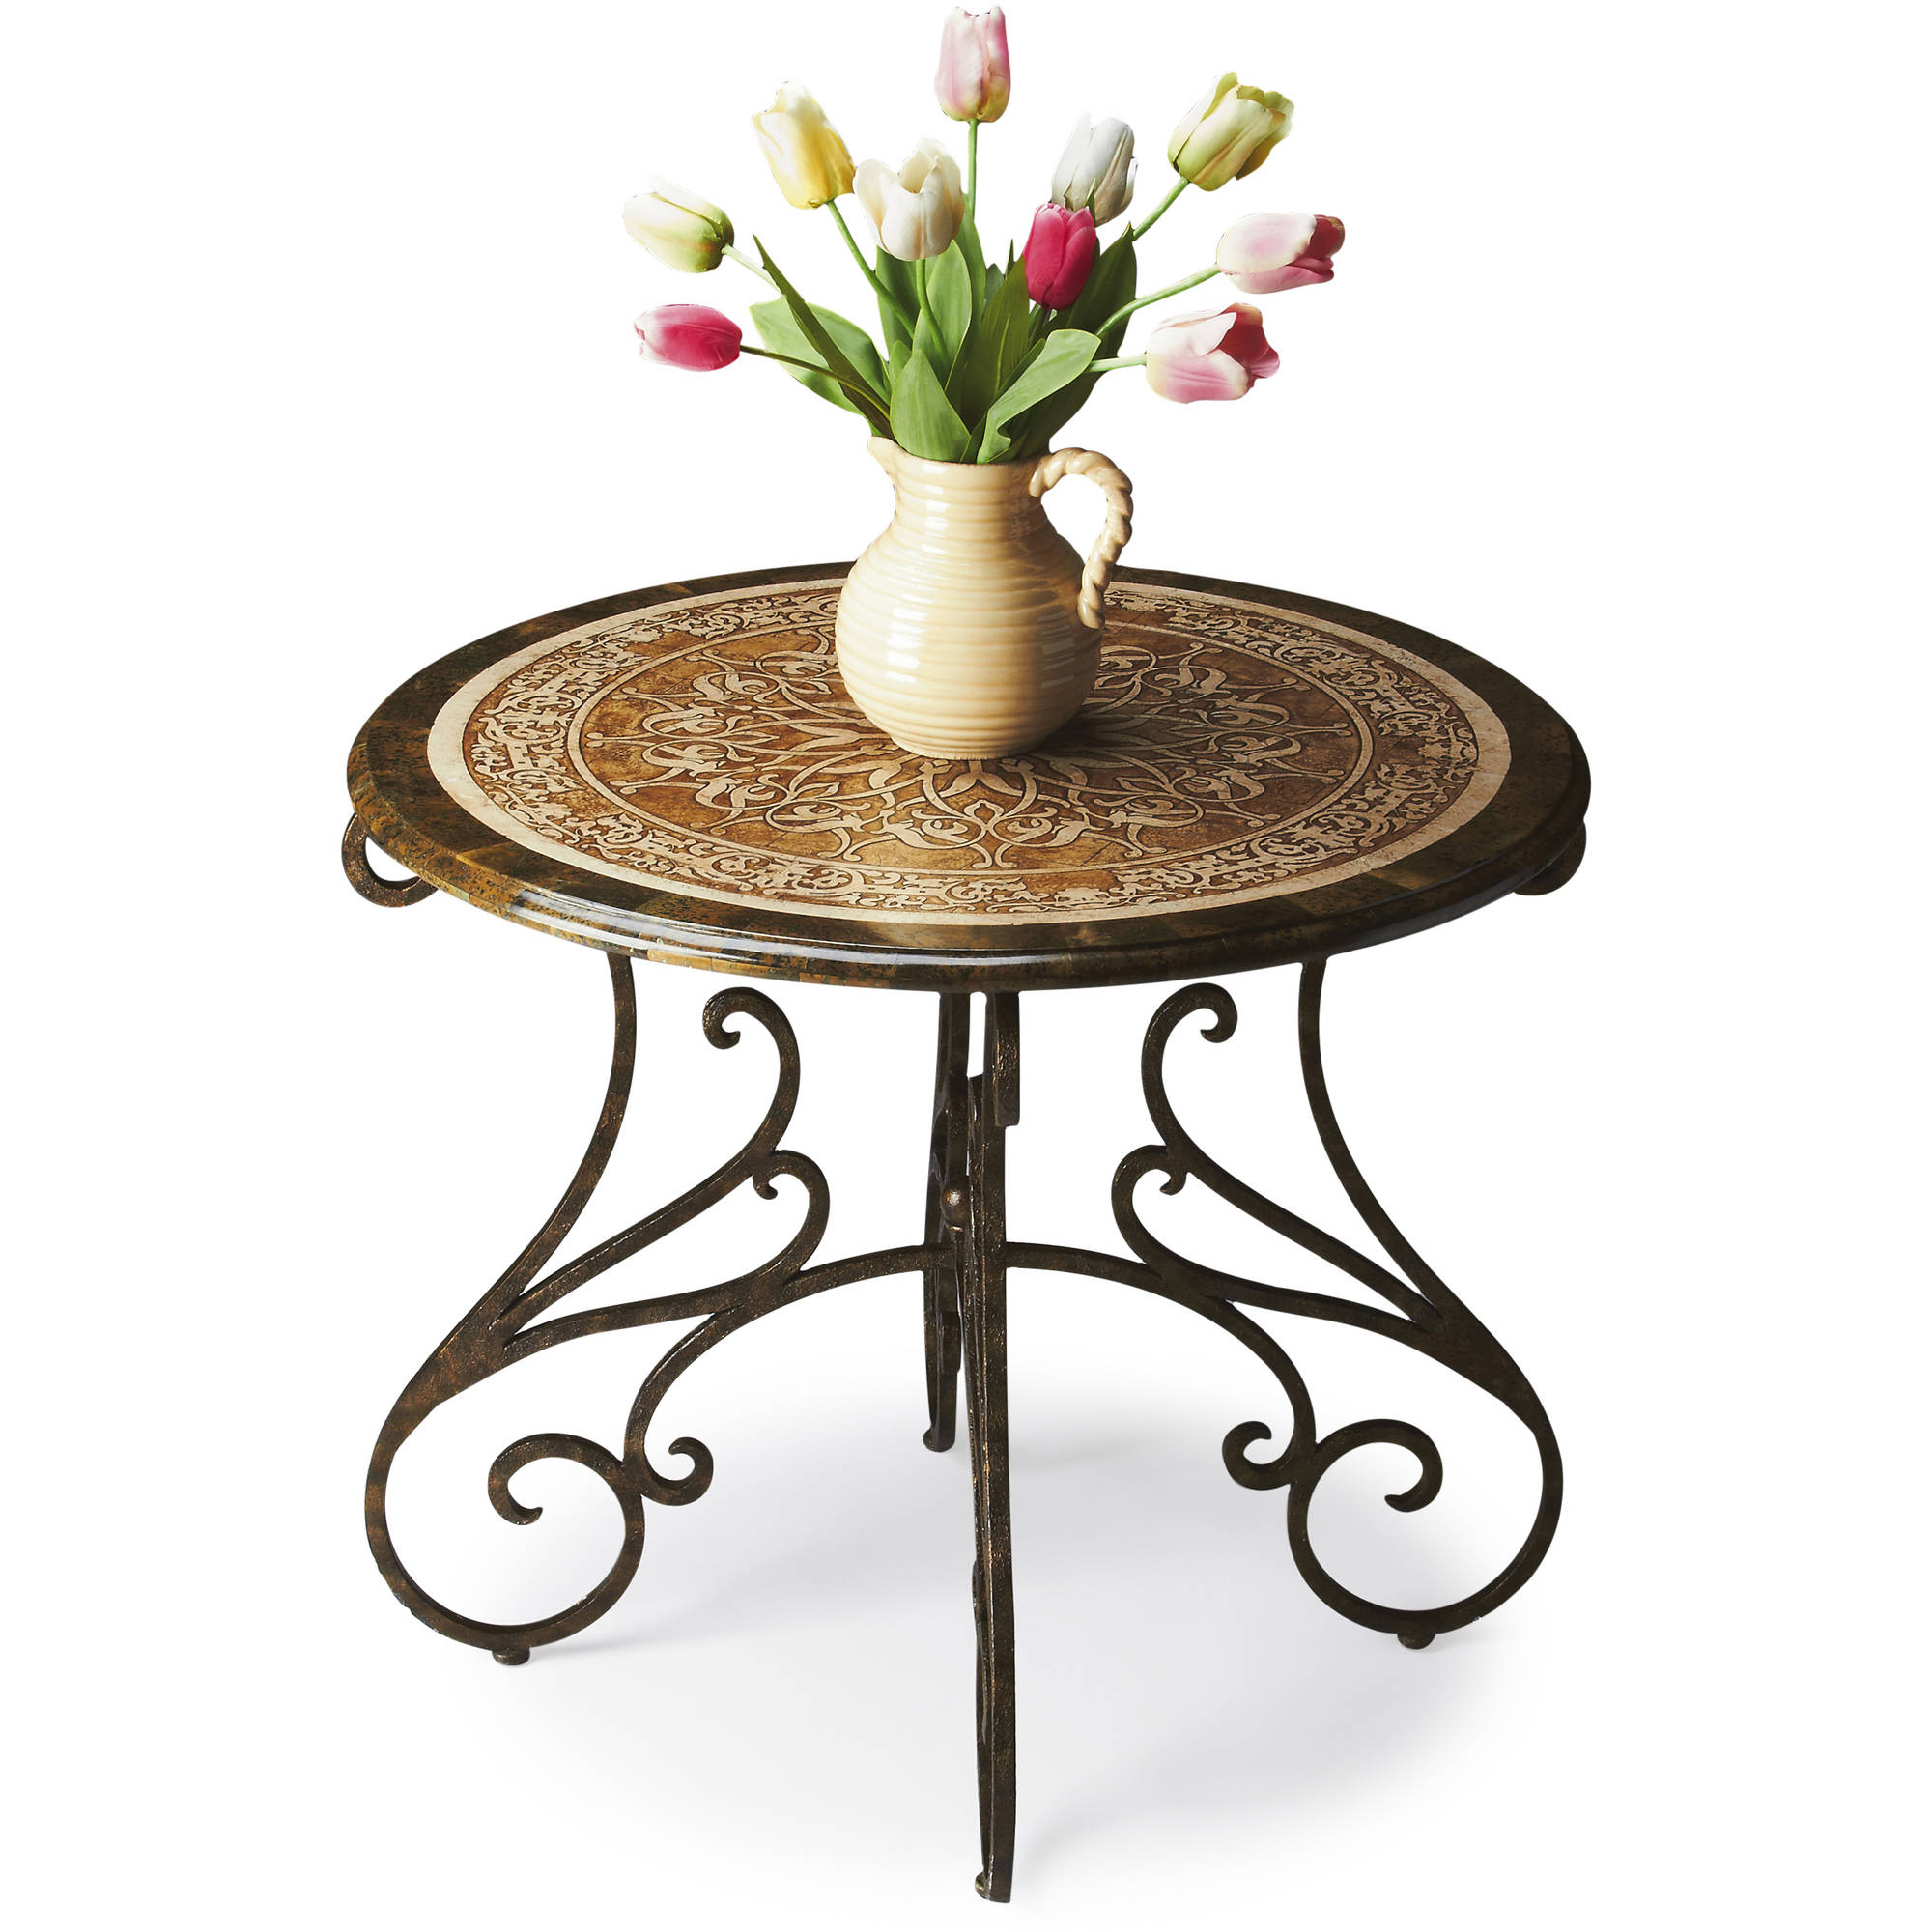 Butler Acid-Etched Fossil Stone Southwestern Steel Foyer Table